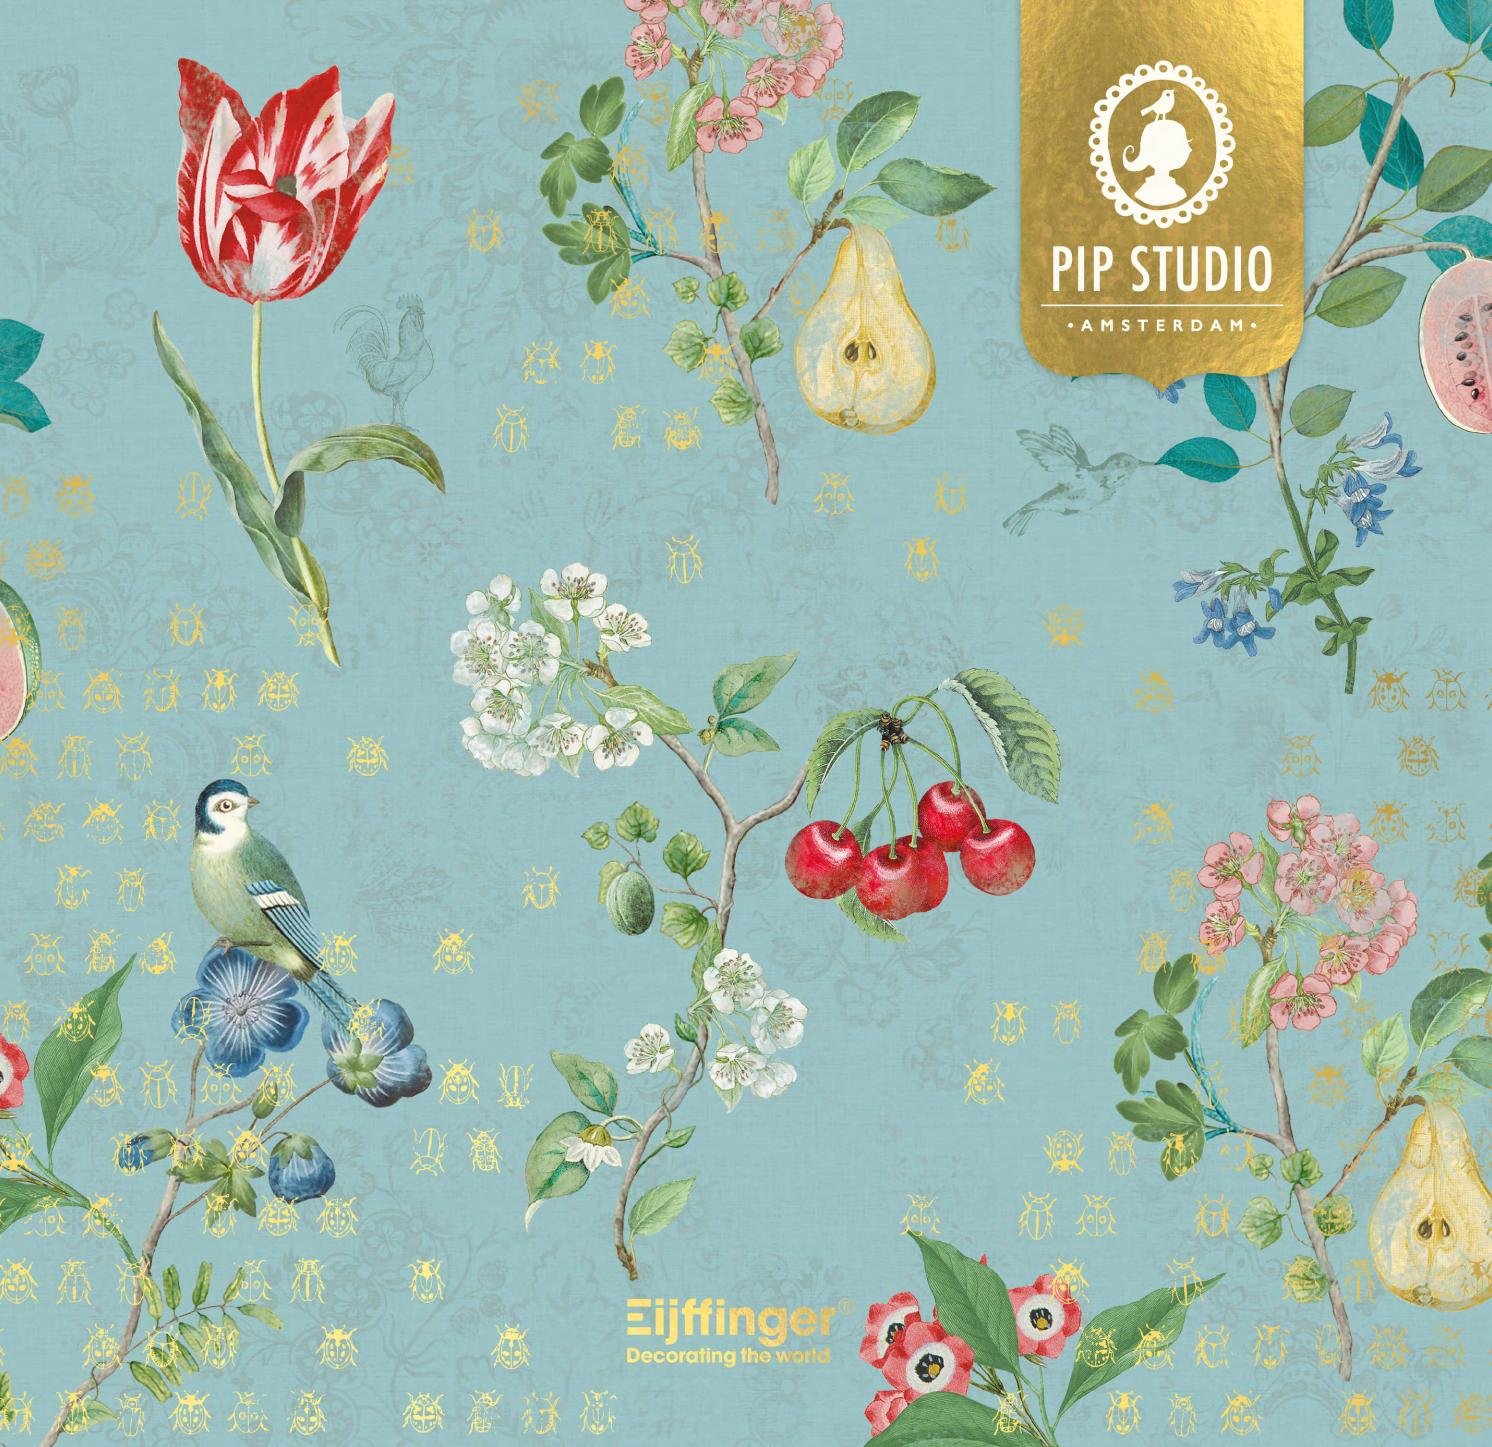 Pip Studio Wallpaper Collection By Pip Studio Issuu